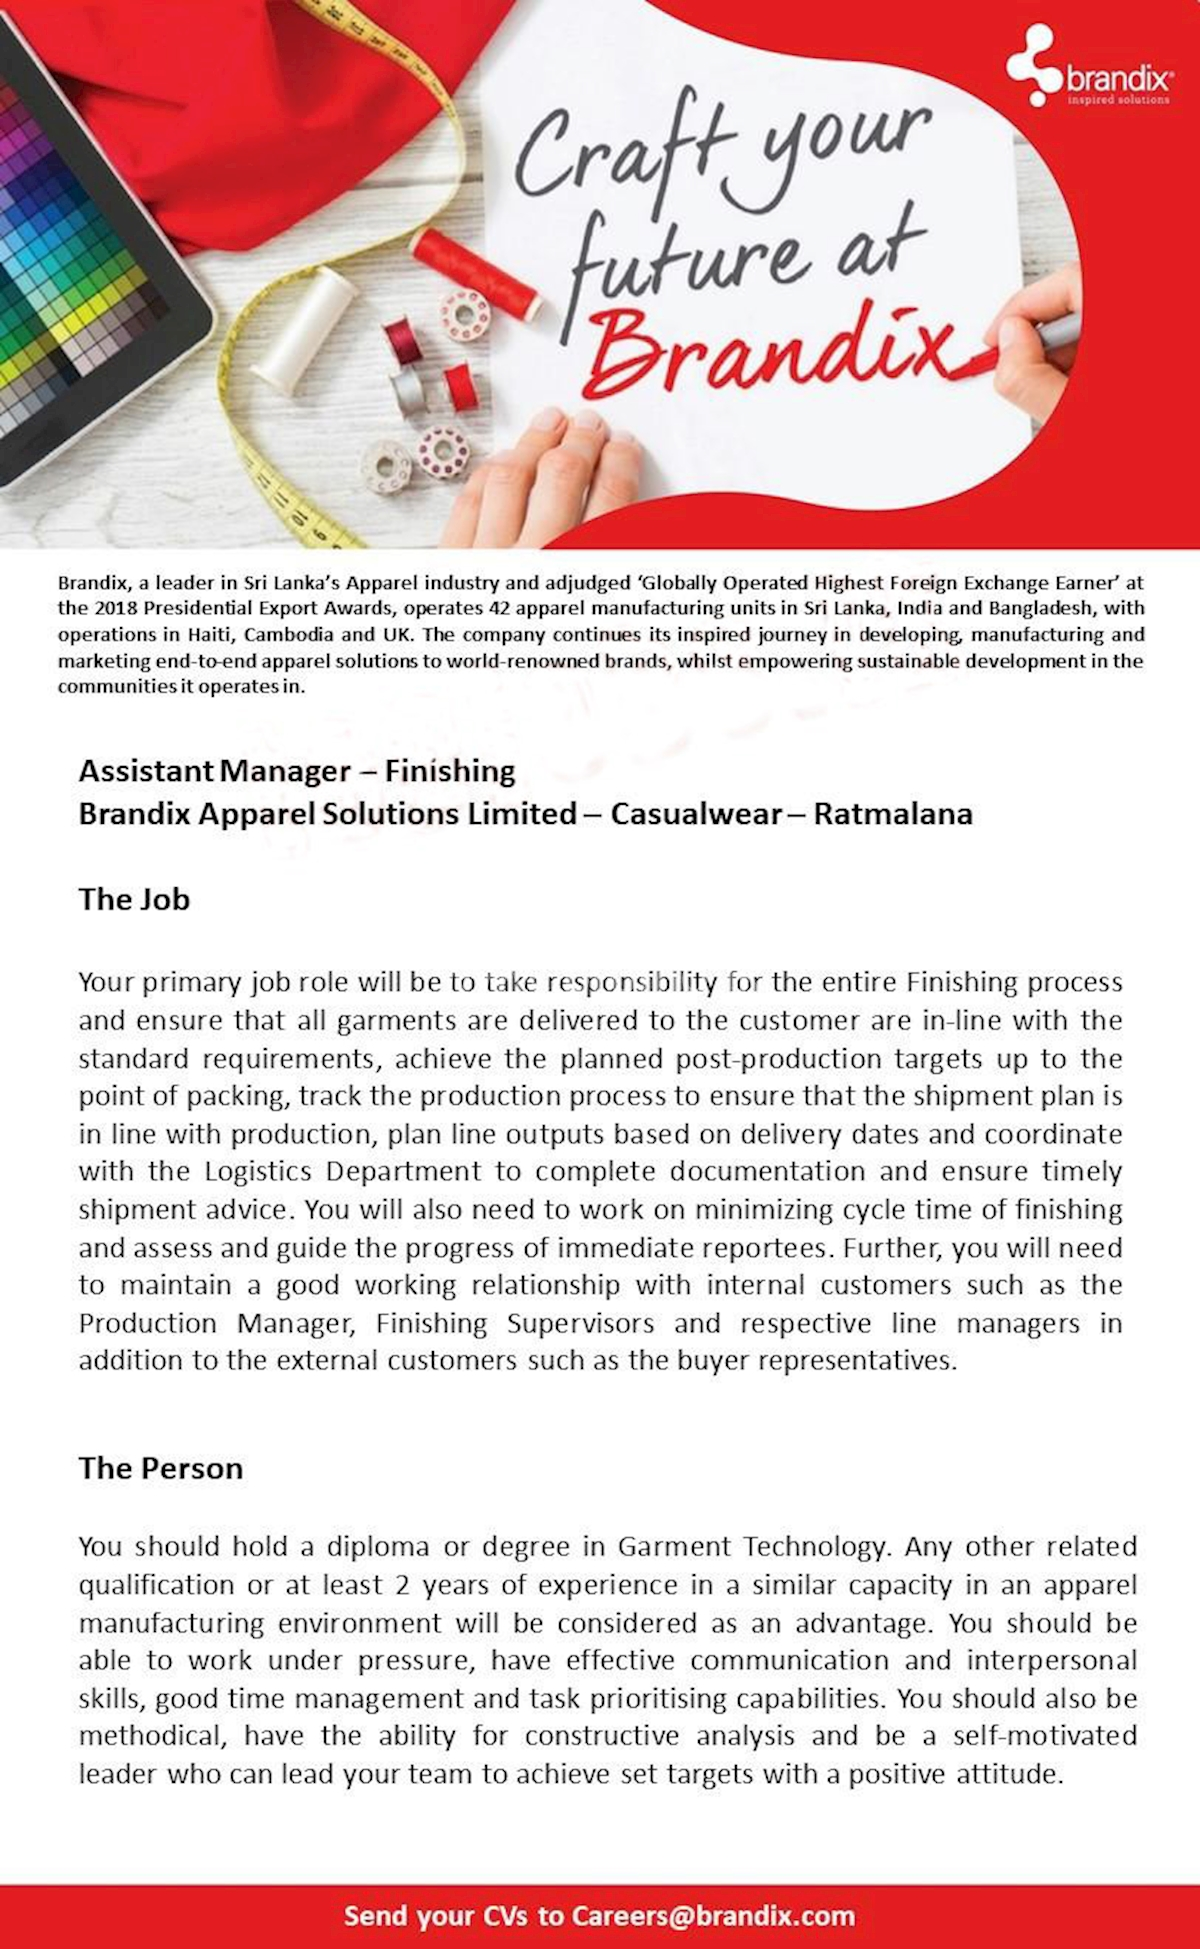 Assistant Manager - Finishing